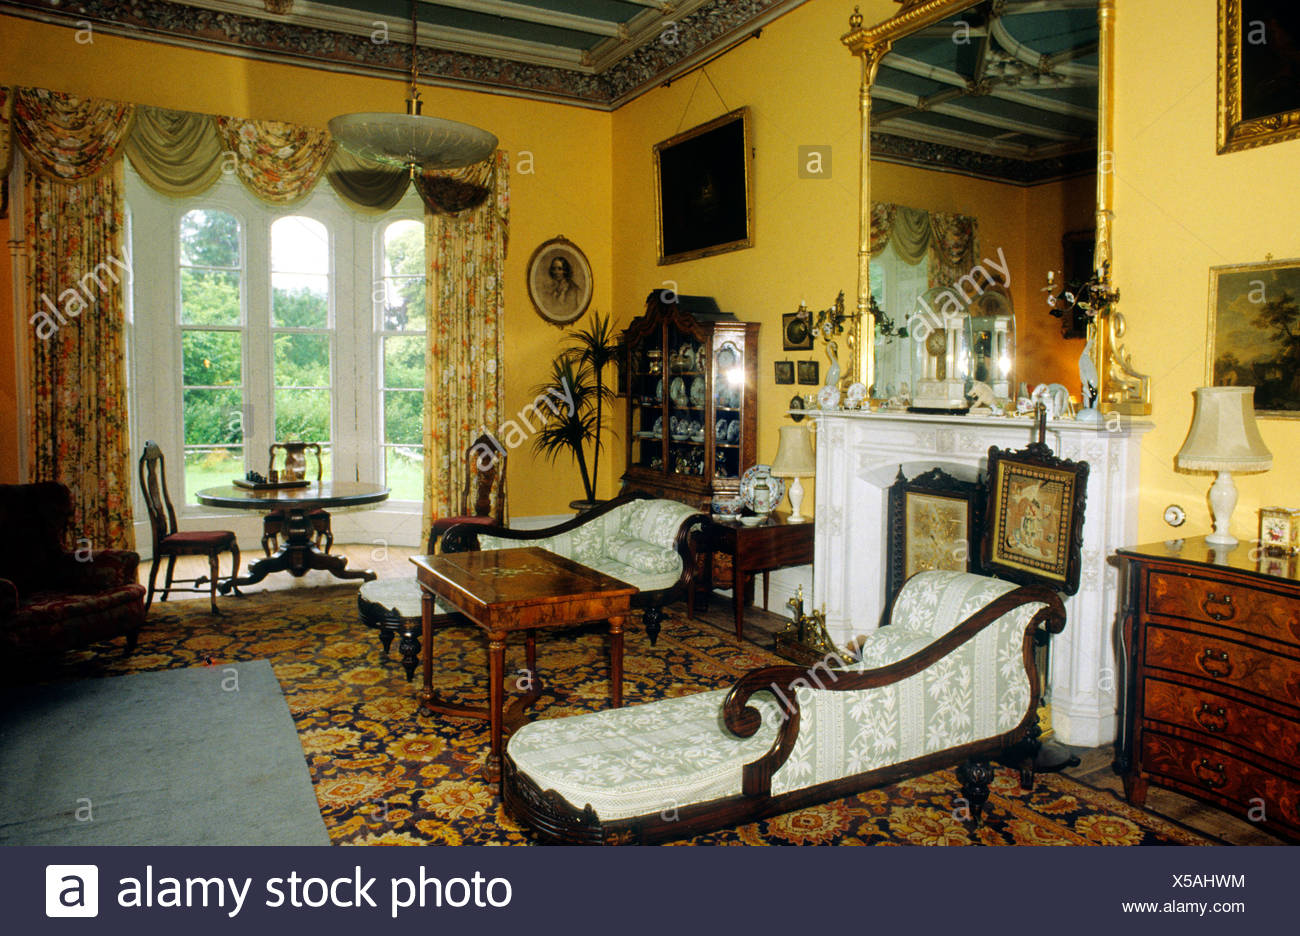 Victorian Manor Stockfotos & Victorian Manor Bilder - Alamy